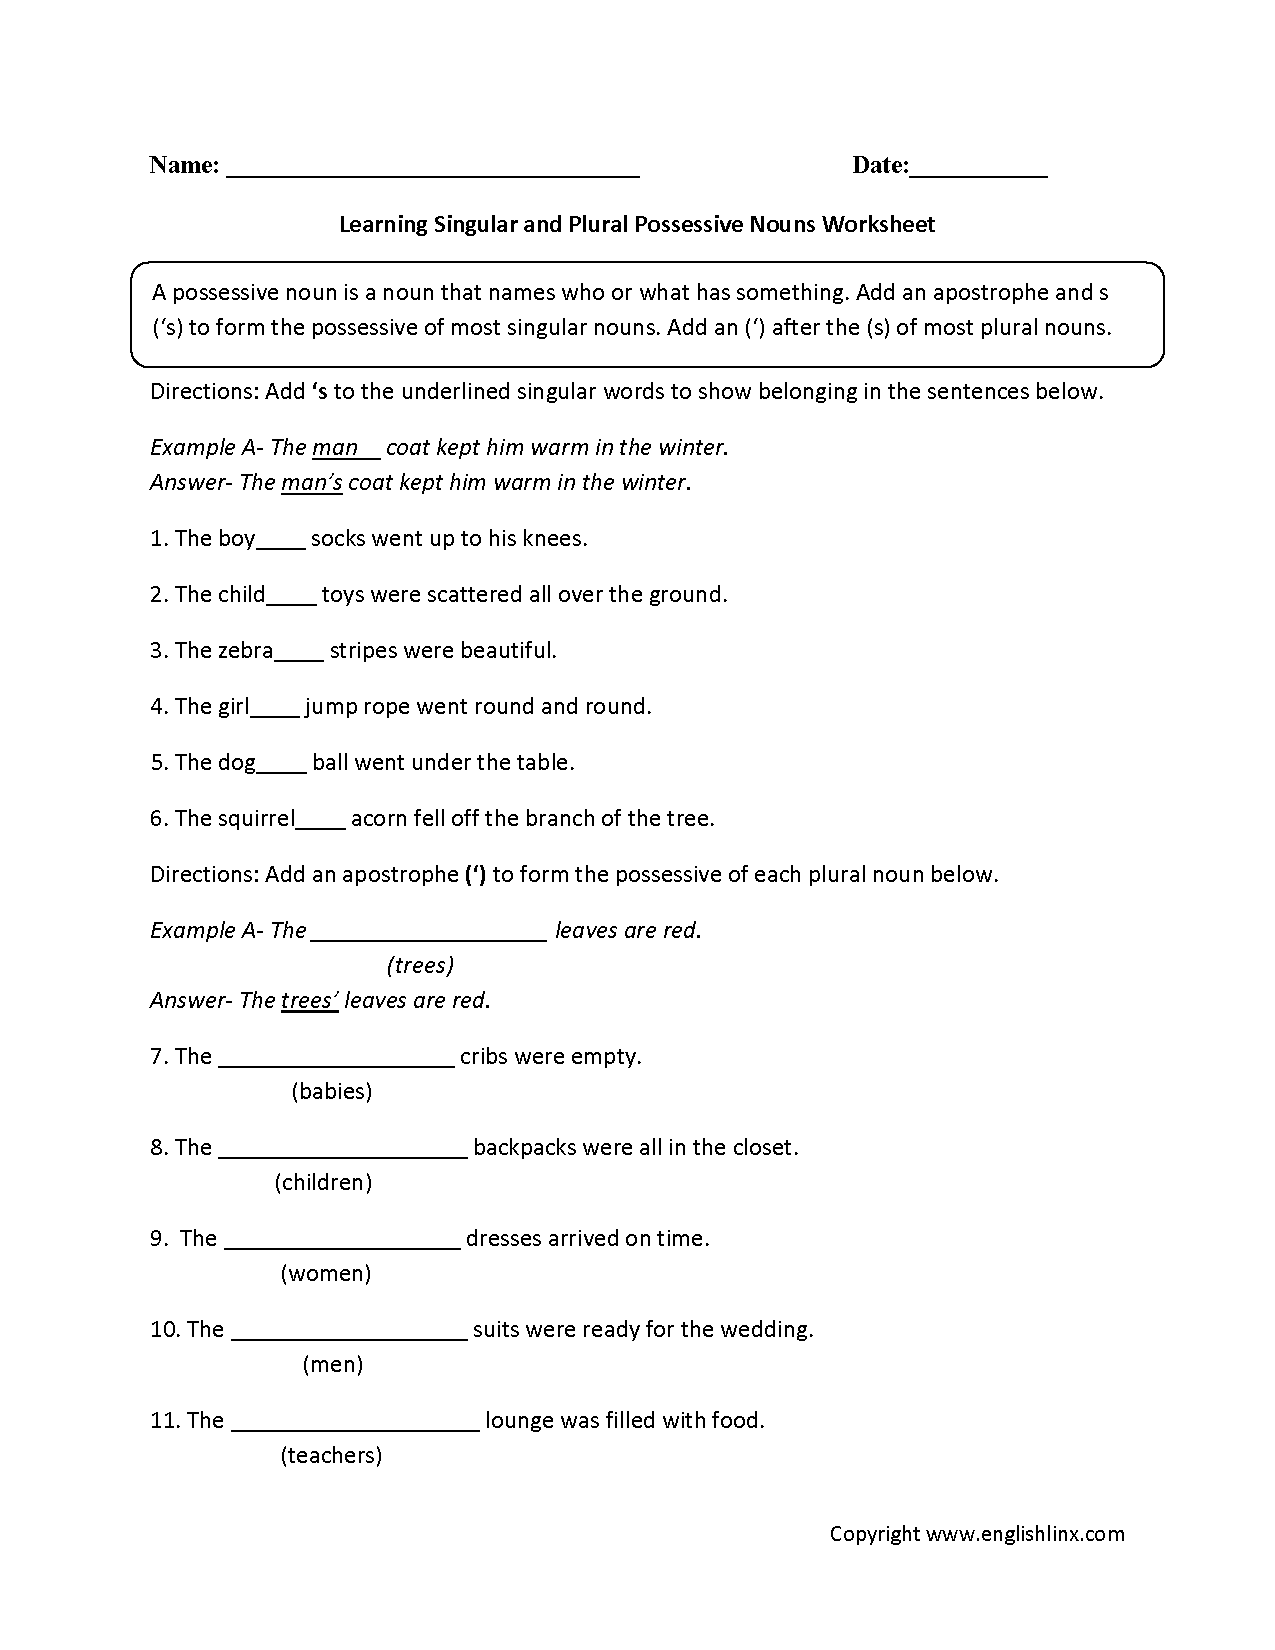 Possessive Nouns Worksheets Learning Singular And Plural